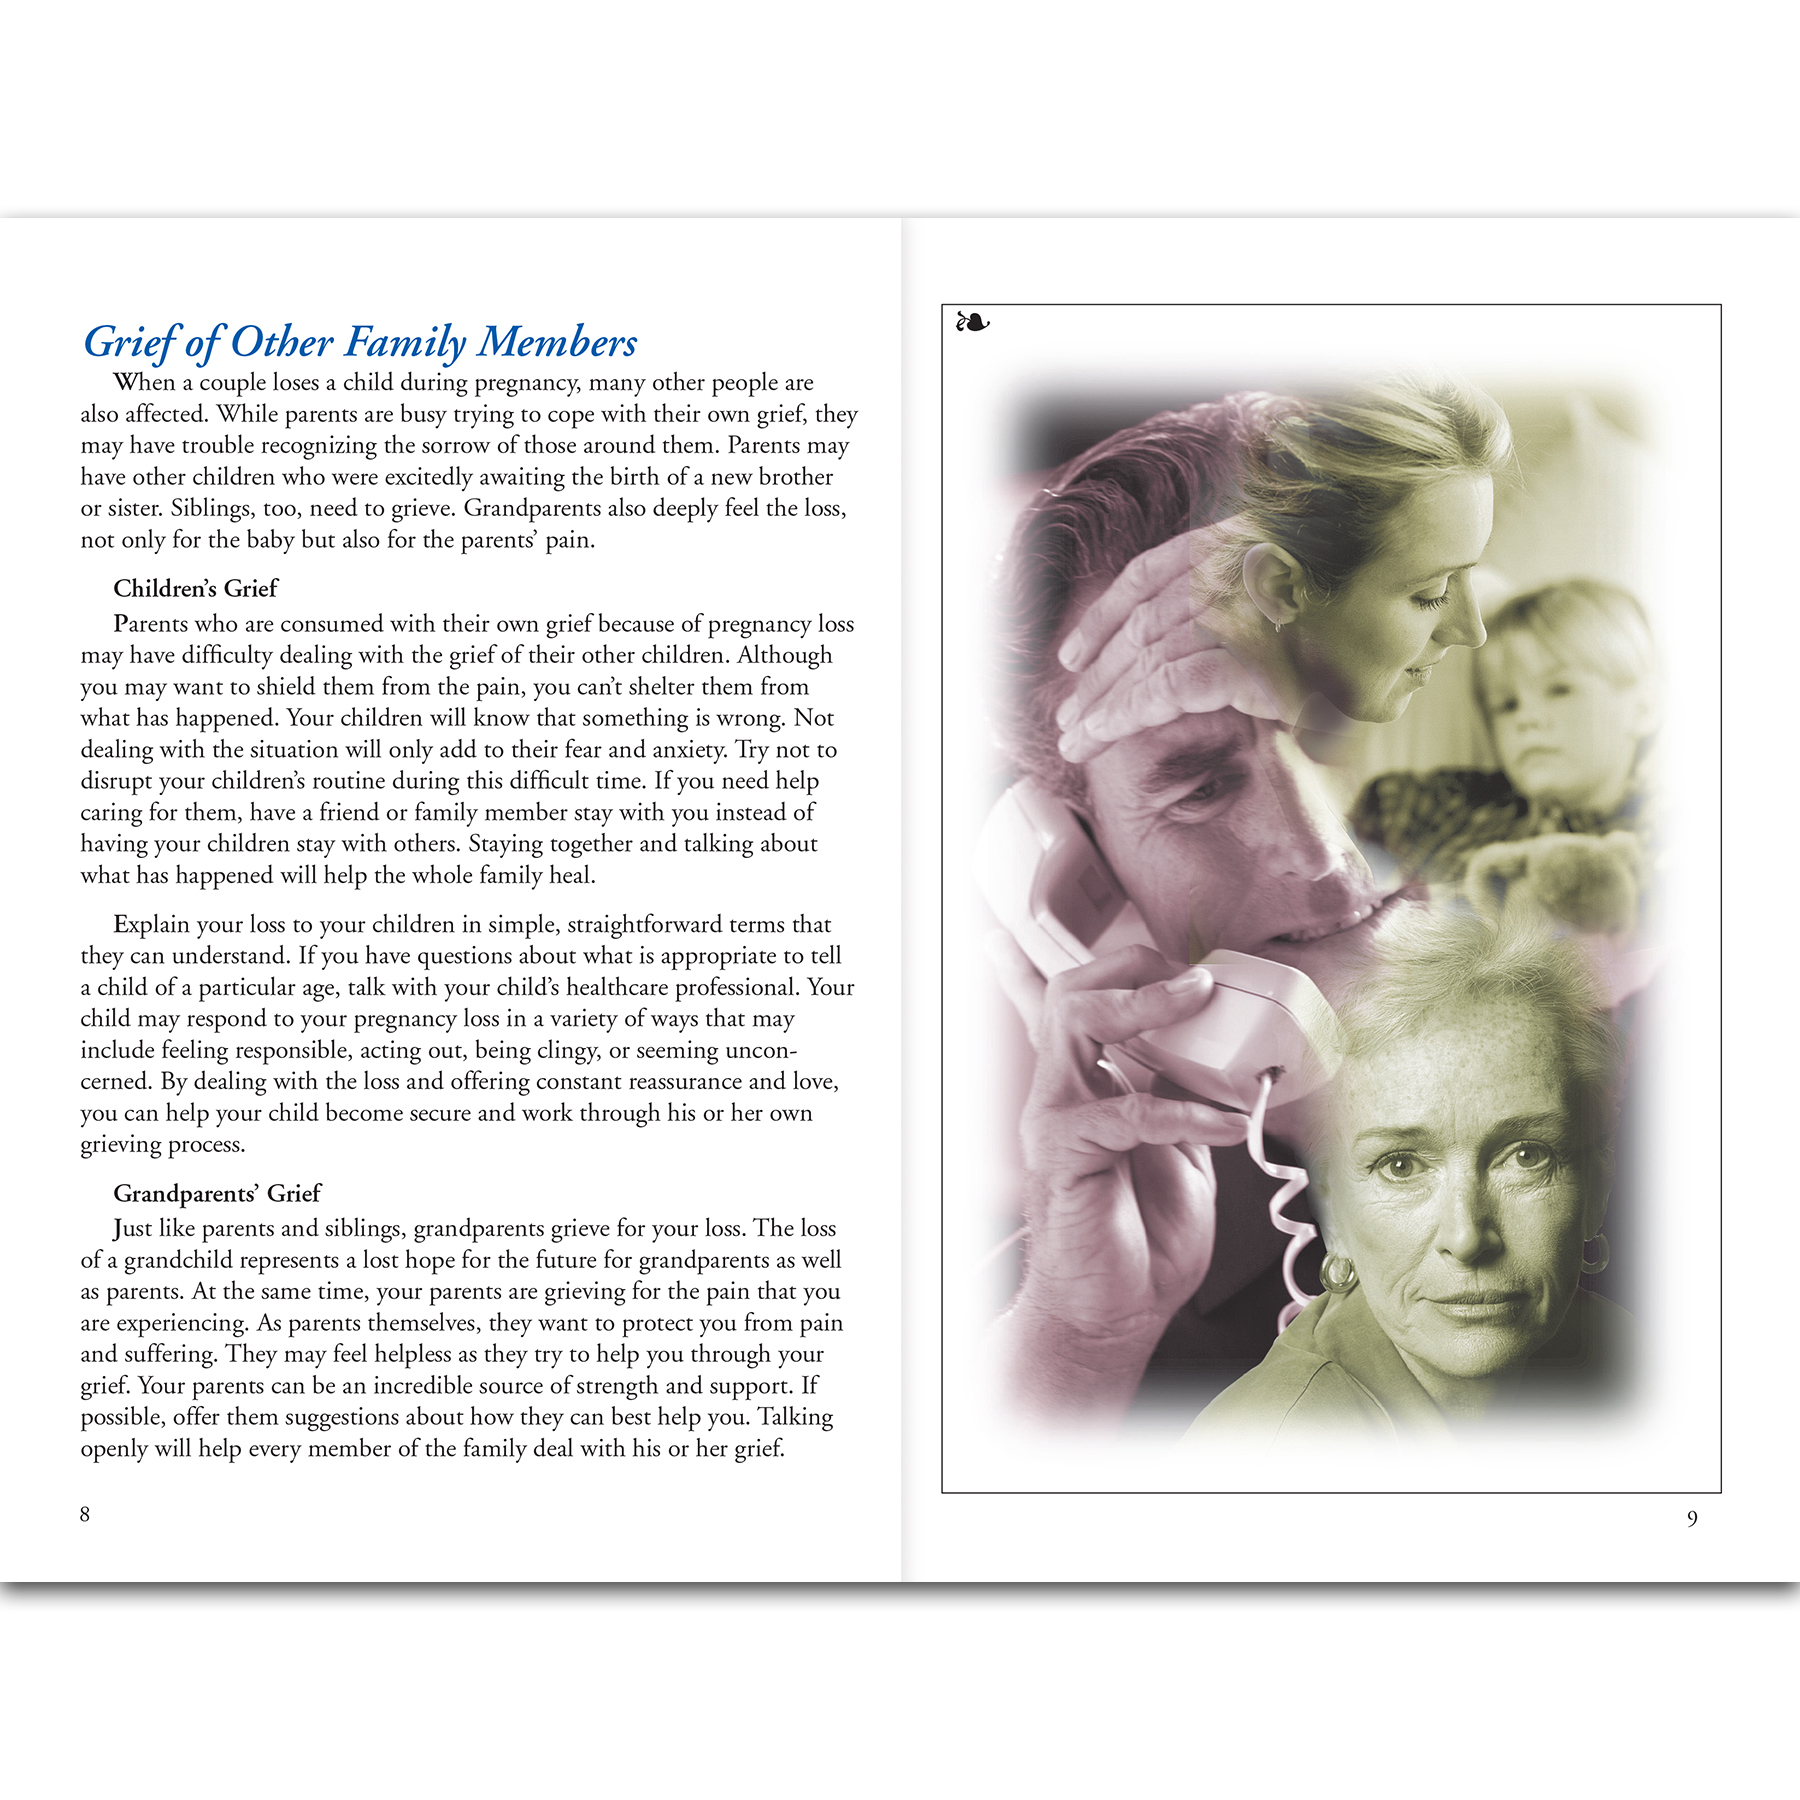 Coping With Pregnancy Loss 16-page booklet center spread image, booklet discusses emotions and grieving process, Childbirth Graphics, 38579